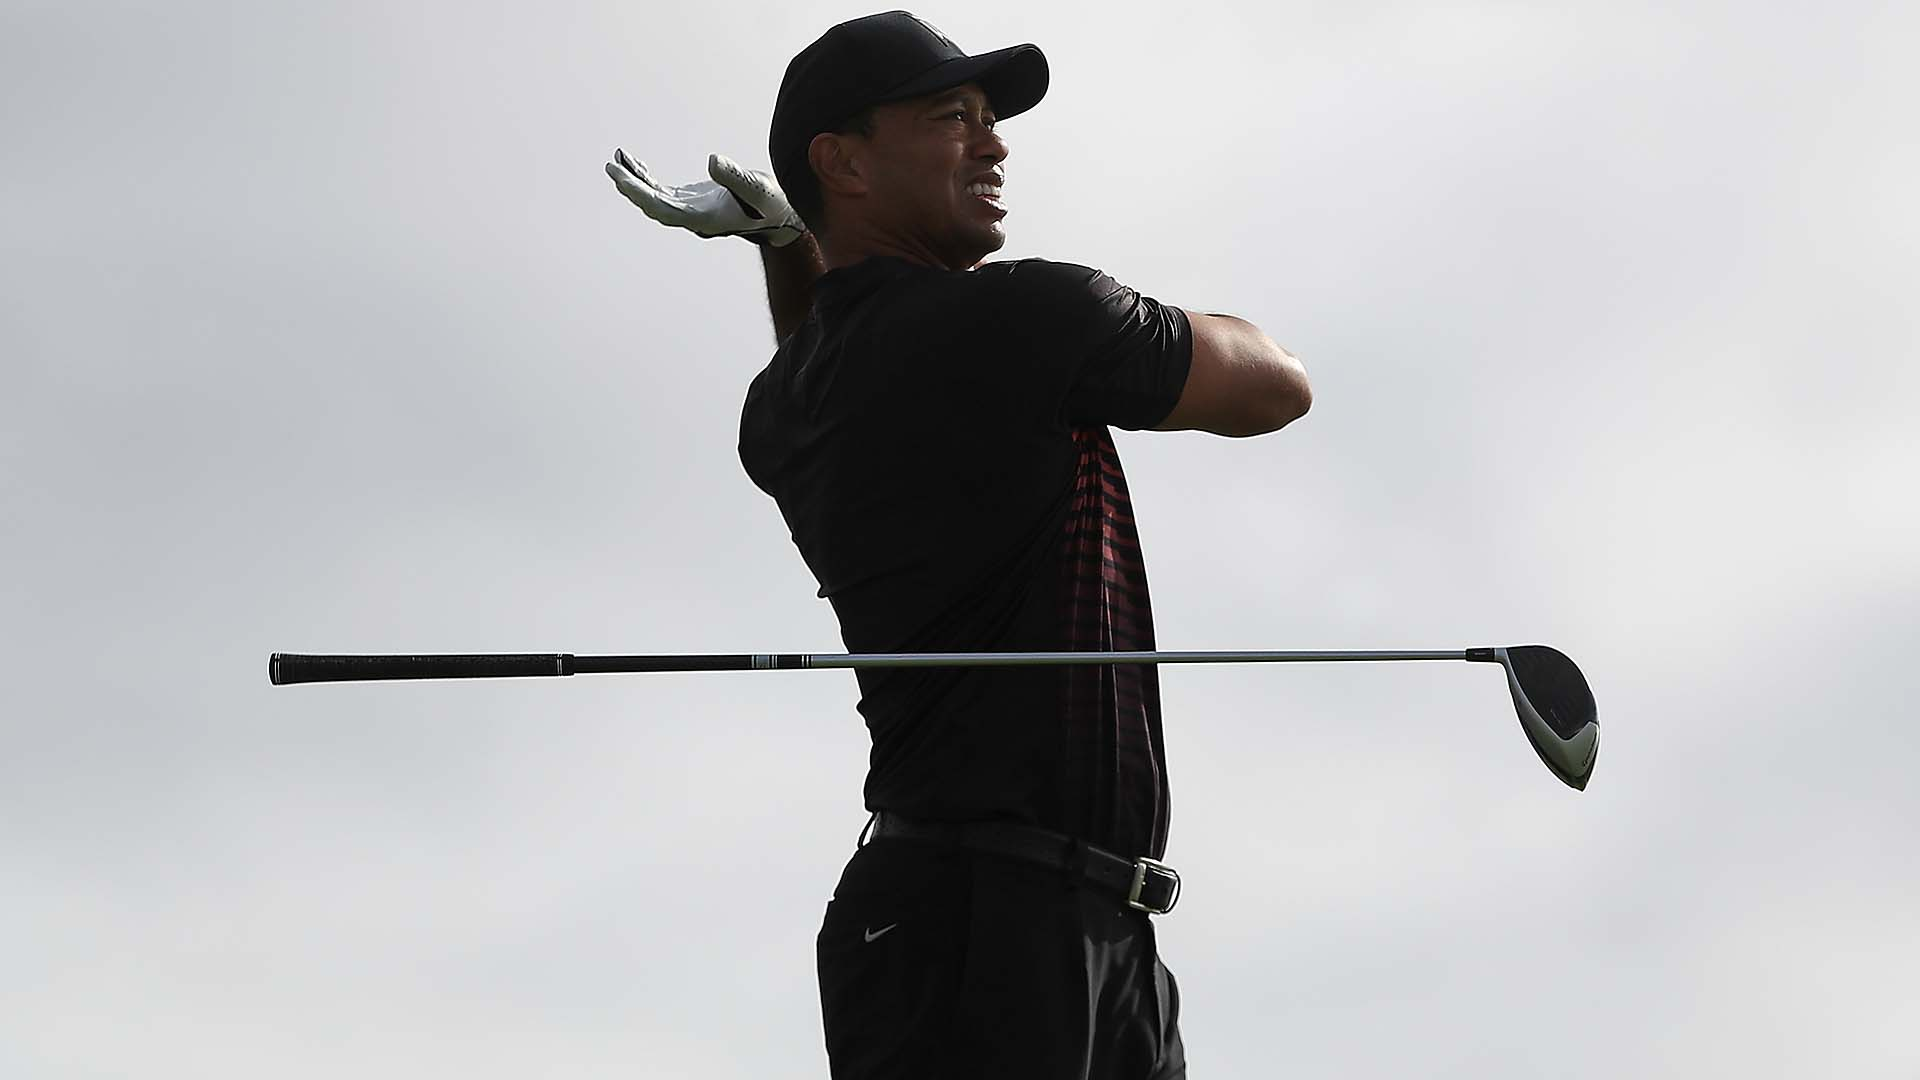 Network execs had to be pleased with what they saw of Tiger Woods ...